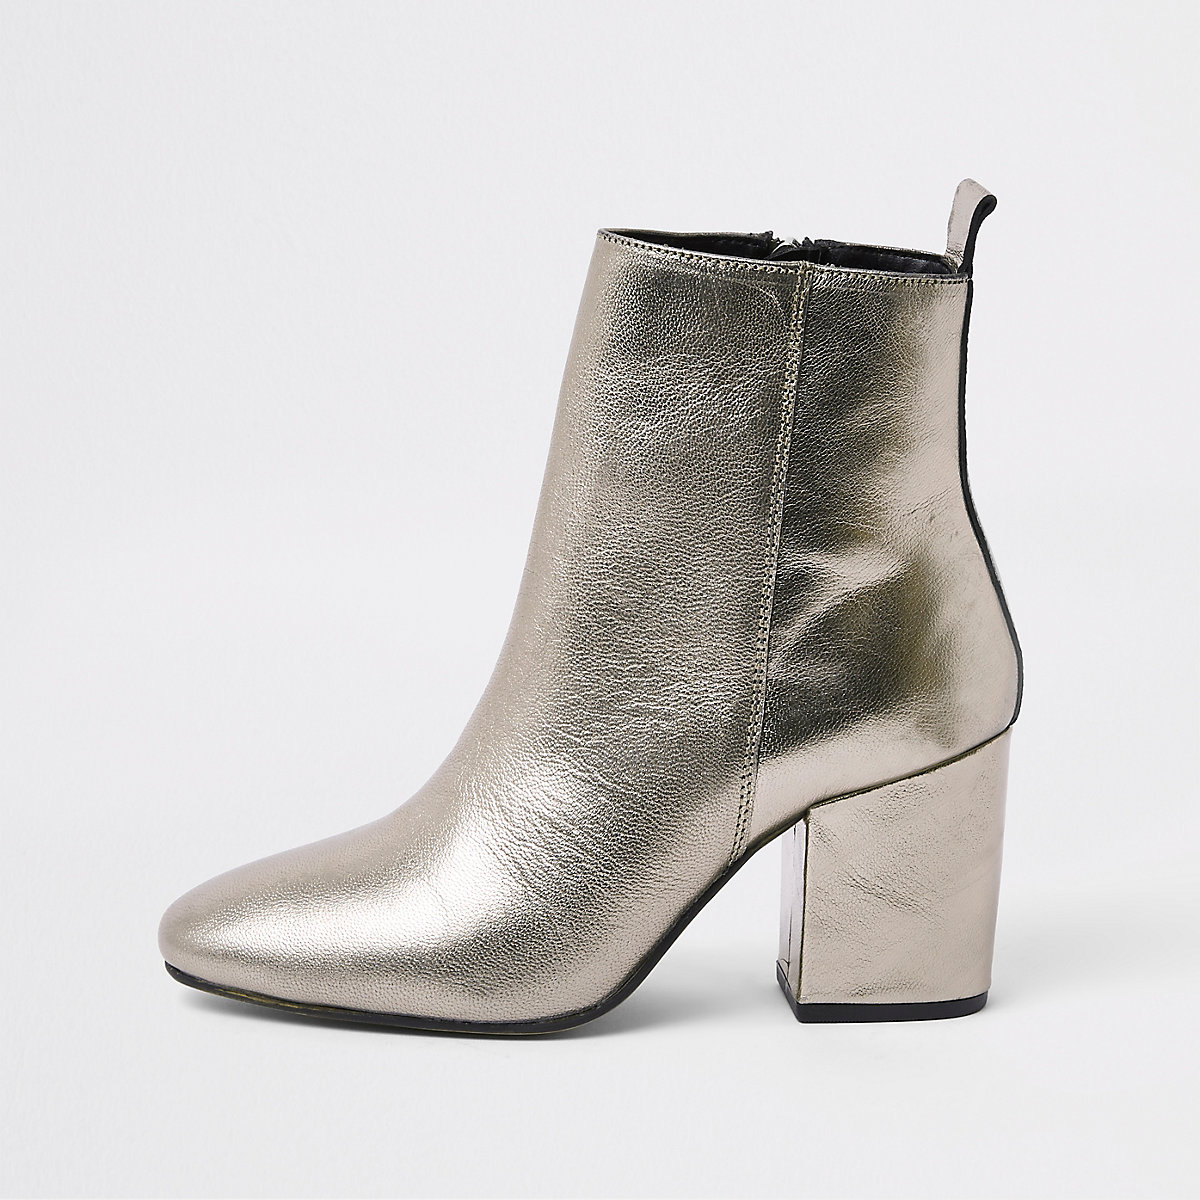 Silver metallic pointed square heel boots